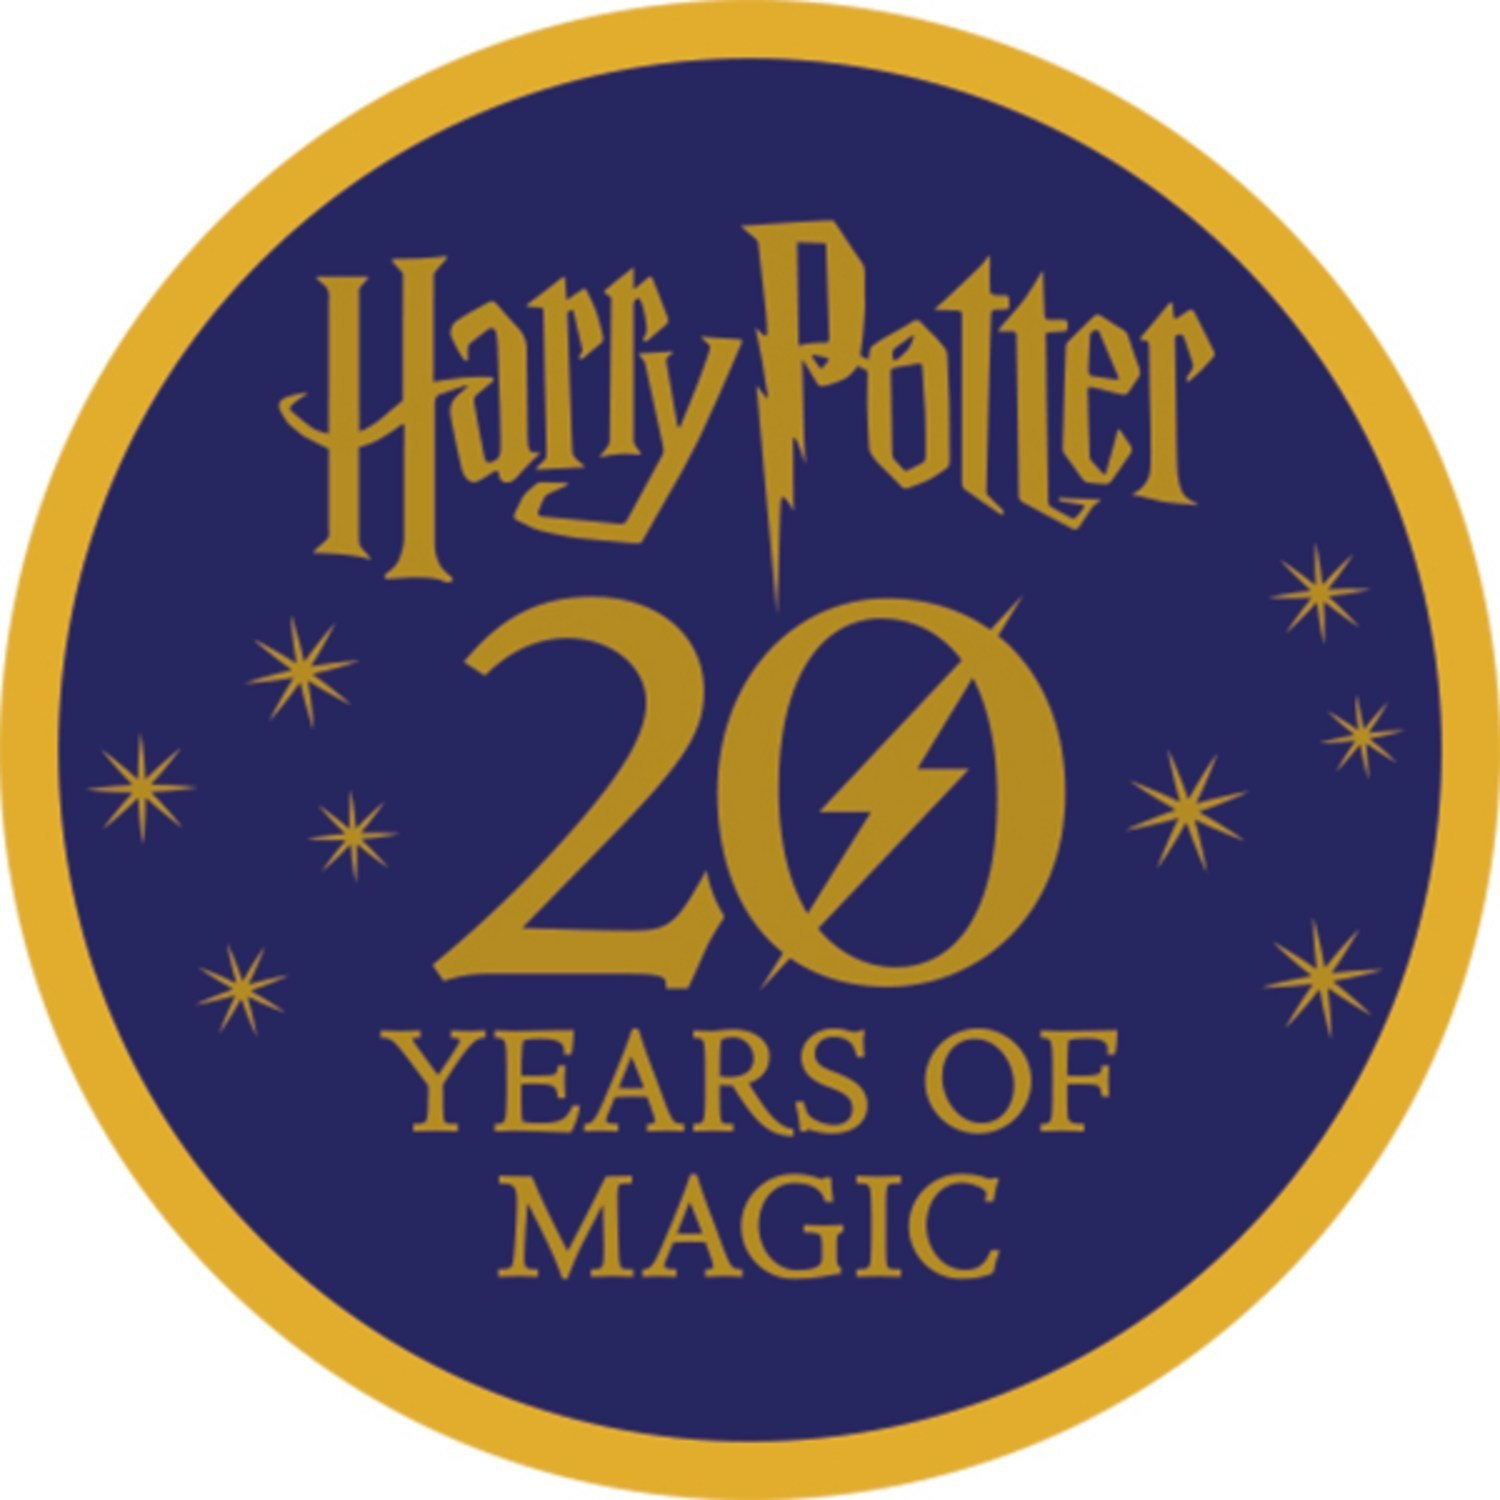 New Publications, A Contest, and More To Celebrate Harry Potter's 20th U.S. Anniversary